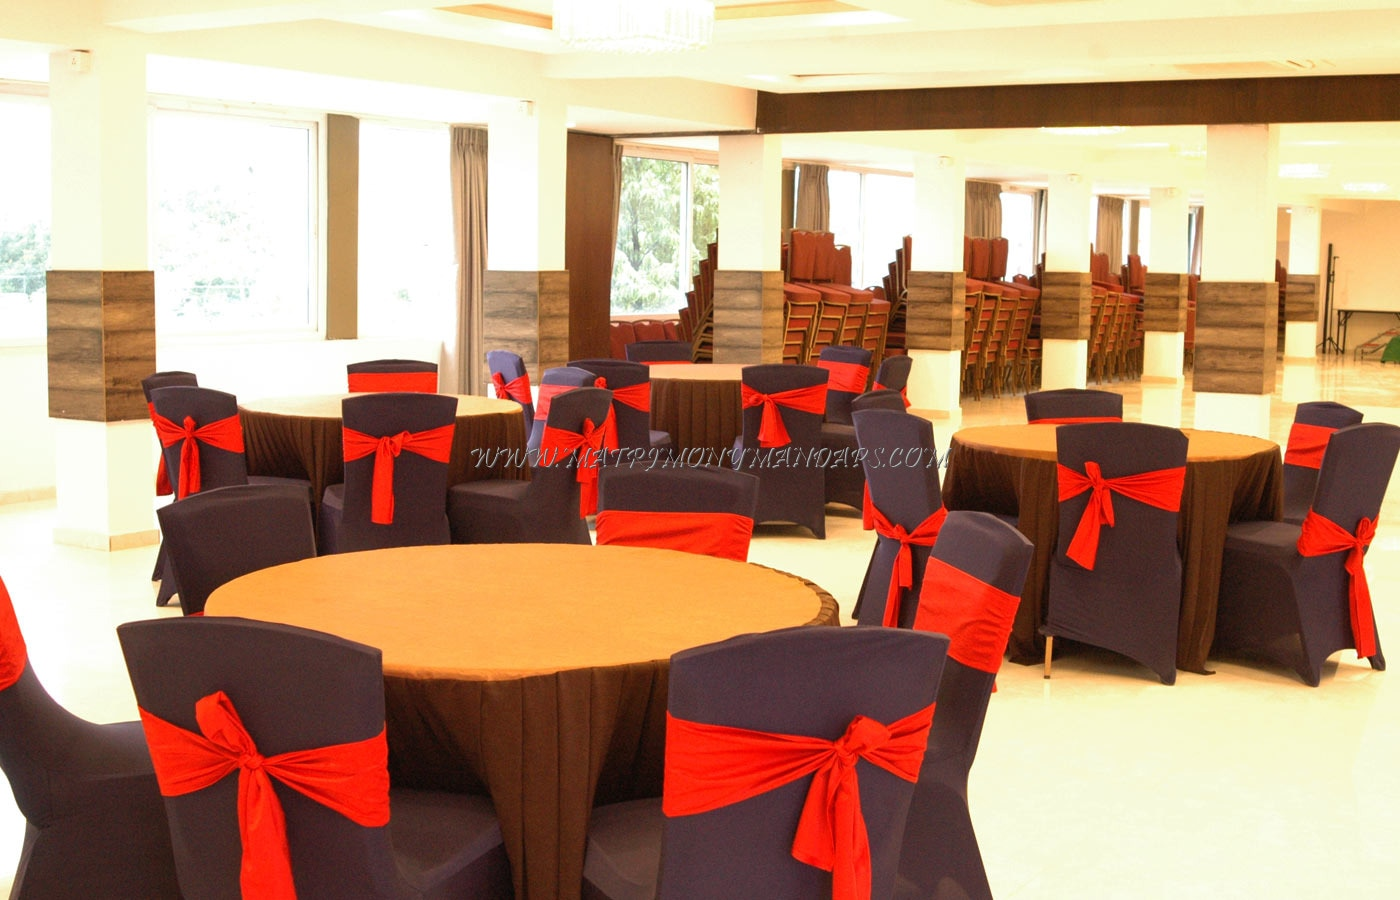 NVR Banquet Hall - Pre-function Area